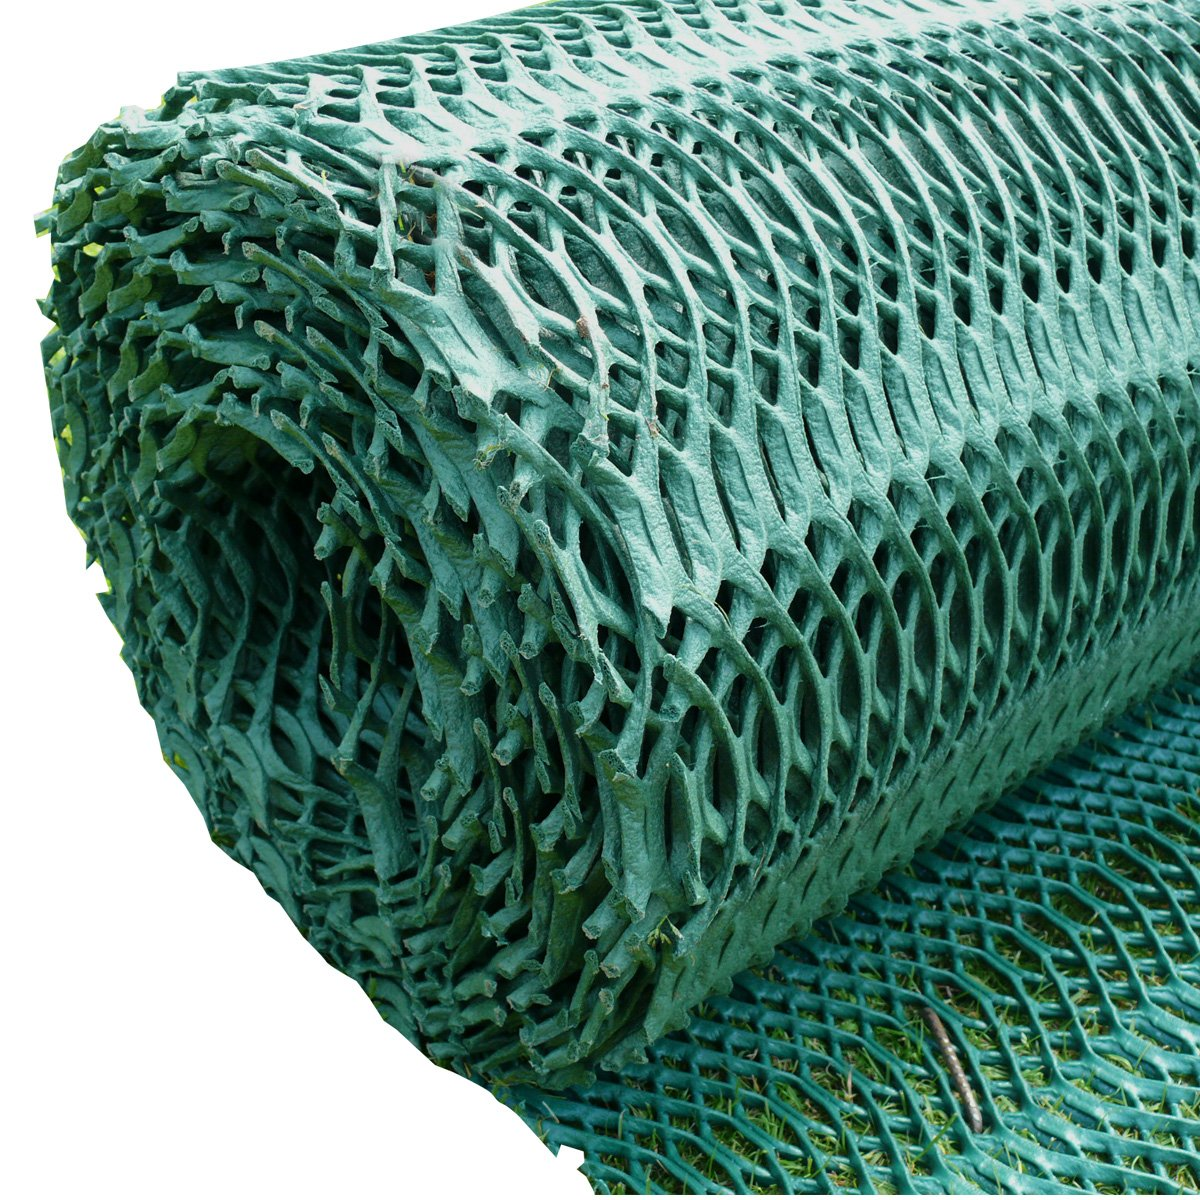 Suregreen Grass Reinforcement Mesh 1 x 10m Turf Protection Driveway Car Parking Bay Mat - 11mm Heavy Duty Lawn and Grass Protector